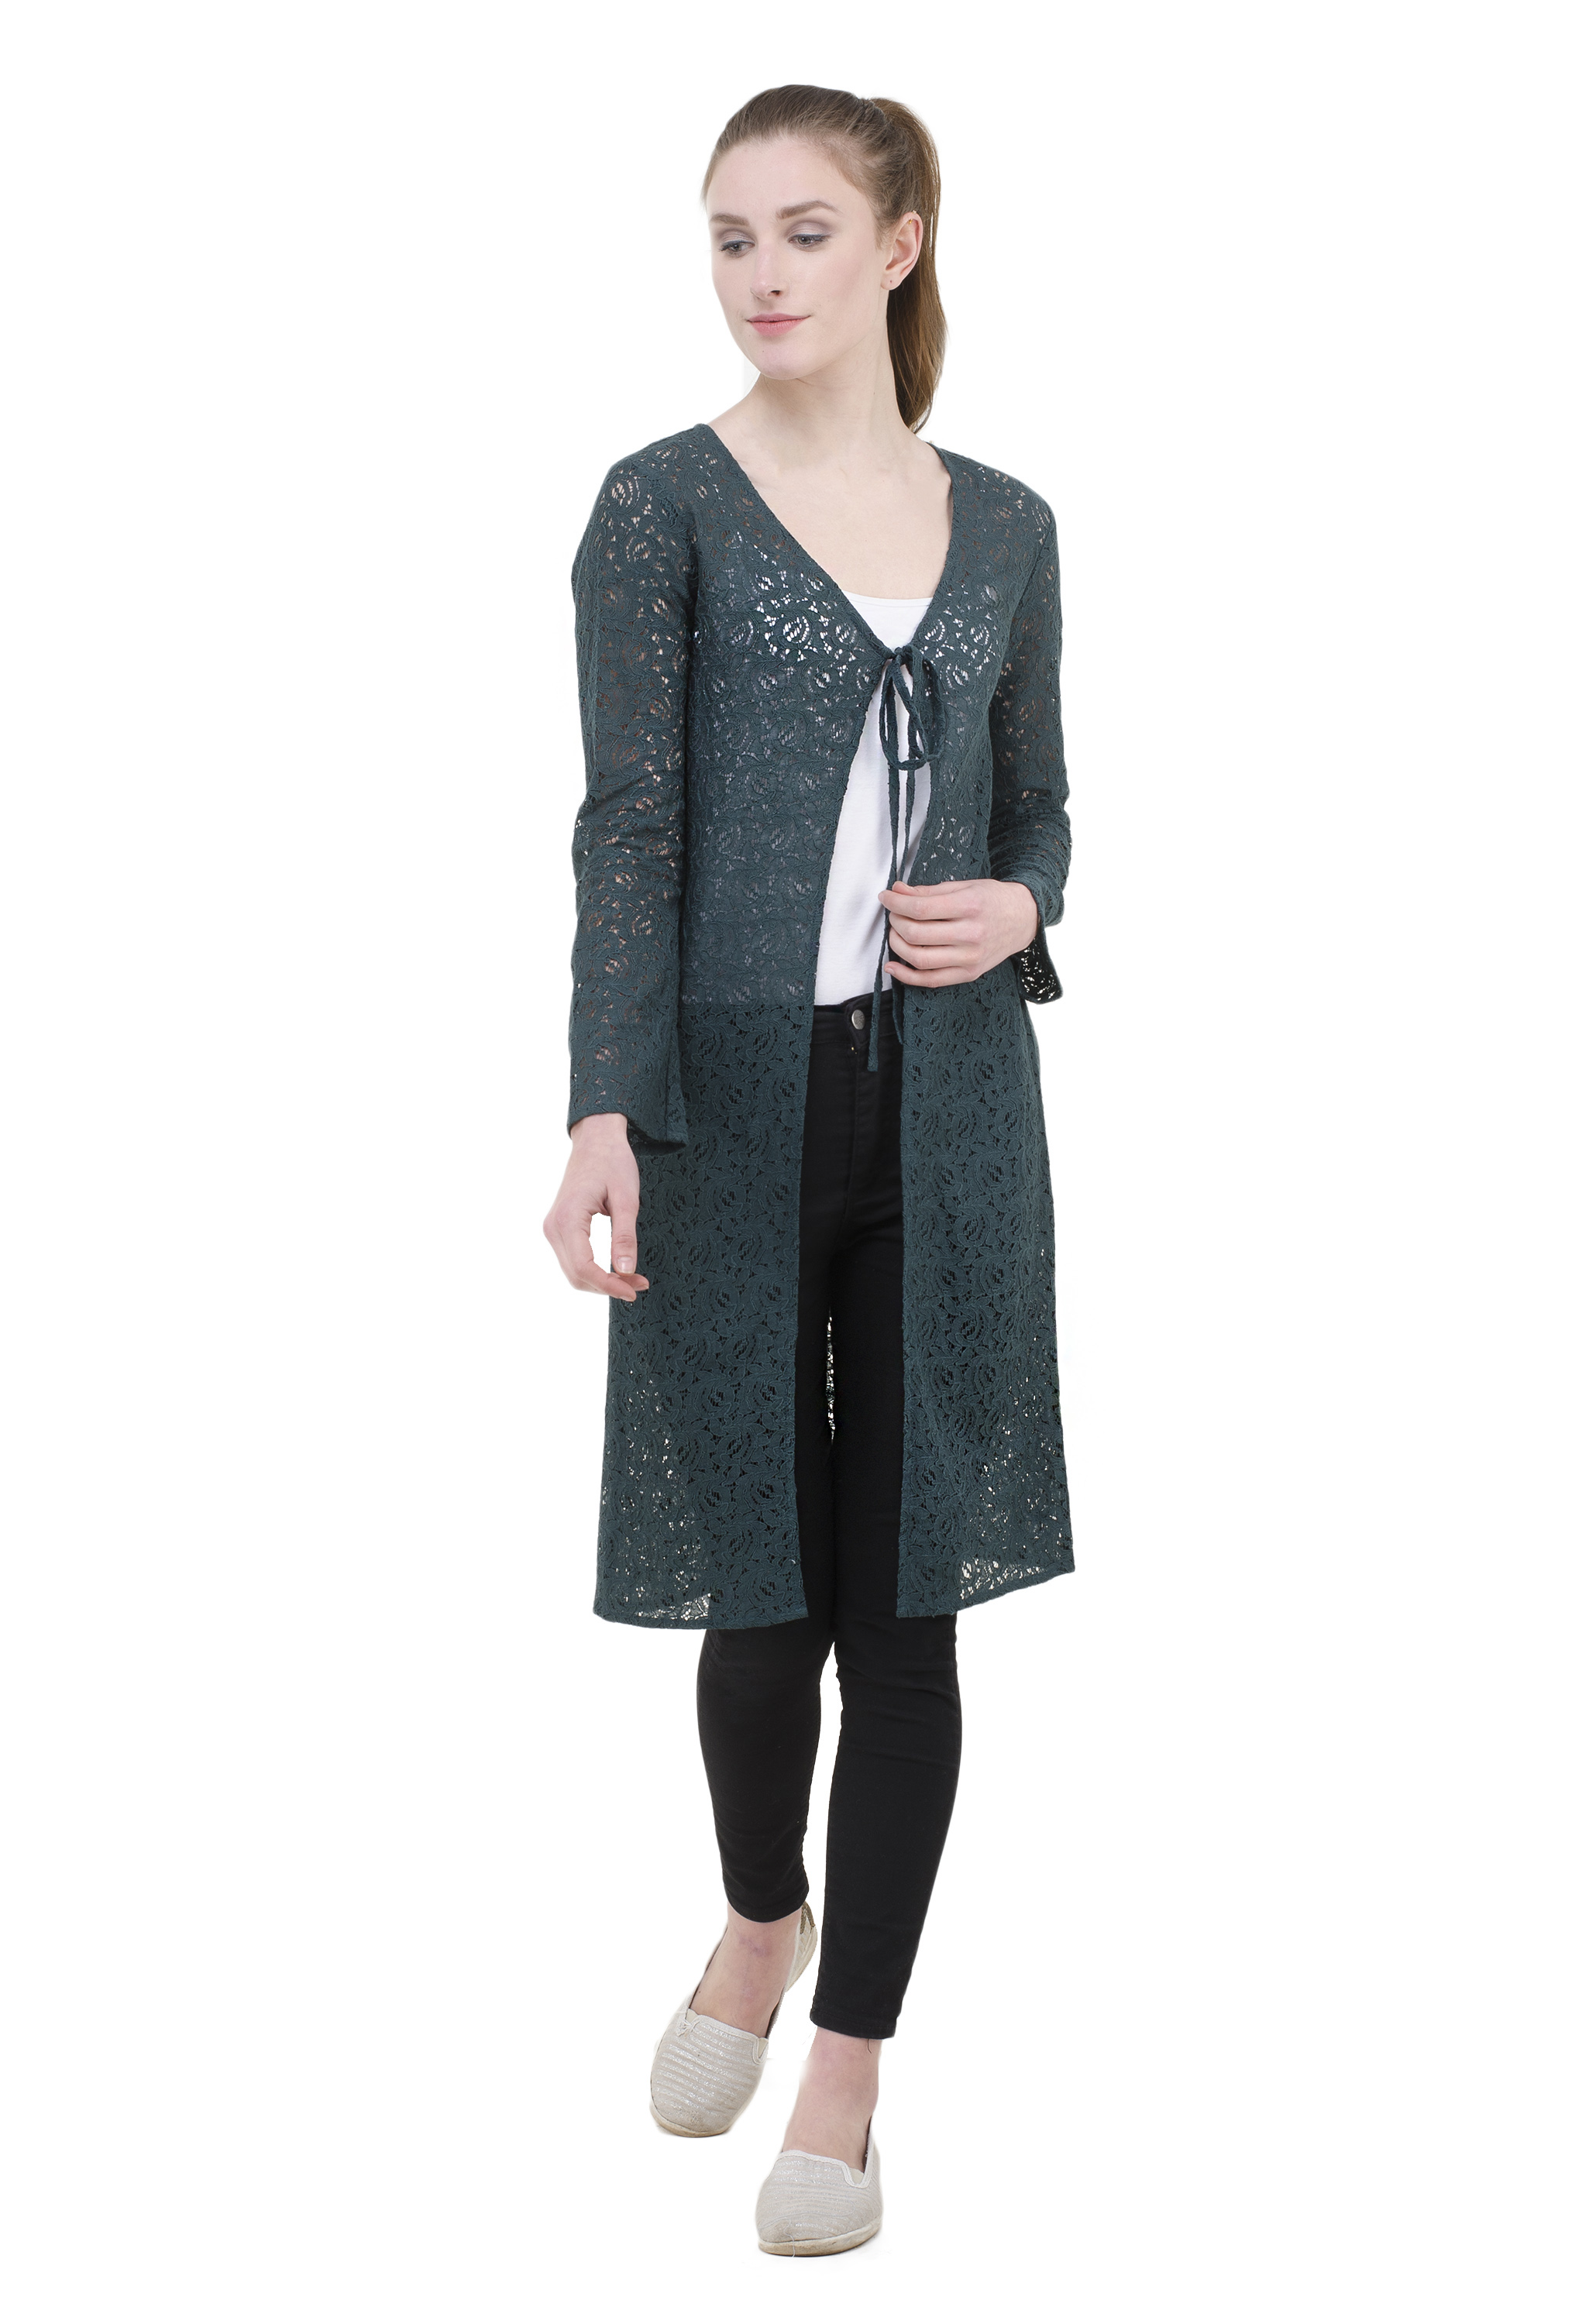 elioop Green Embroidary Lace Fabric With 3/4 Sleeve.dress Up With All Tops & T-shirt.1